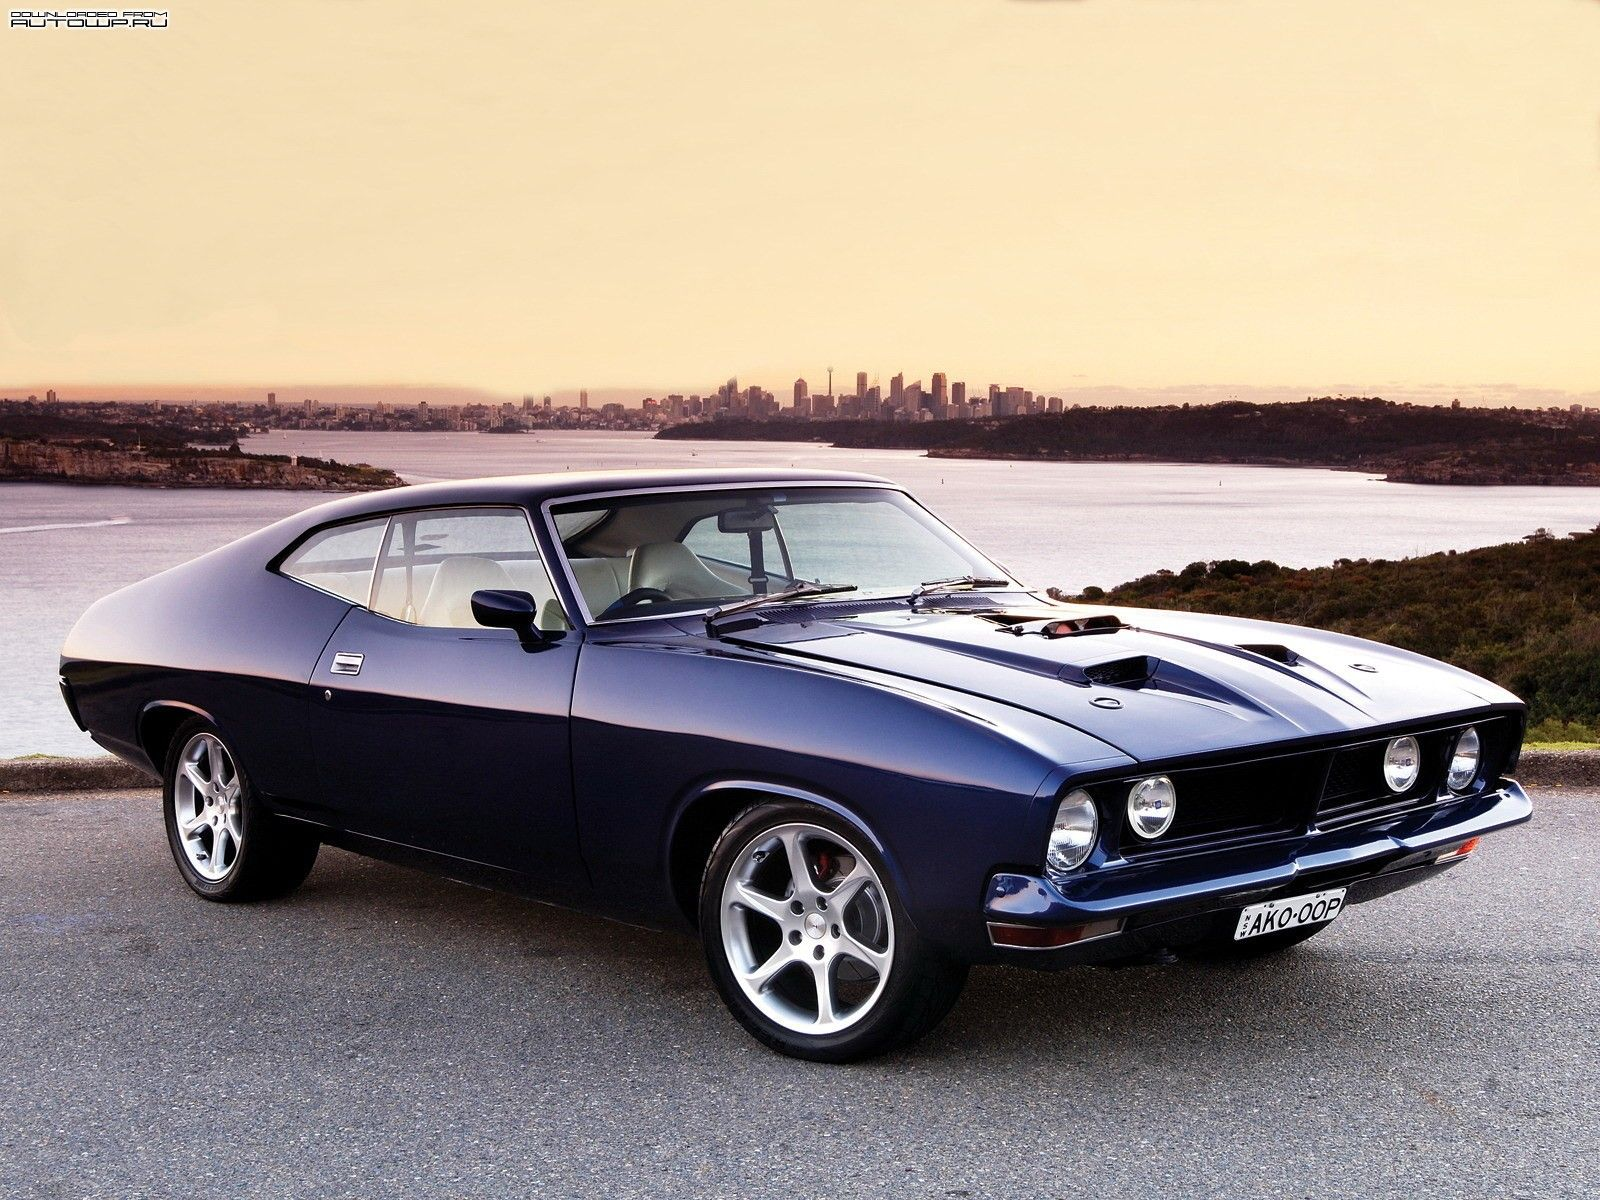 Ford Falcon Aussie Muscle Car Ford Australia 1600x1200 Wallpaper Travel Rides We Cover The World Over 2 Aussie Muscle Cars Ford Falcon Classic Cars Muscle